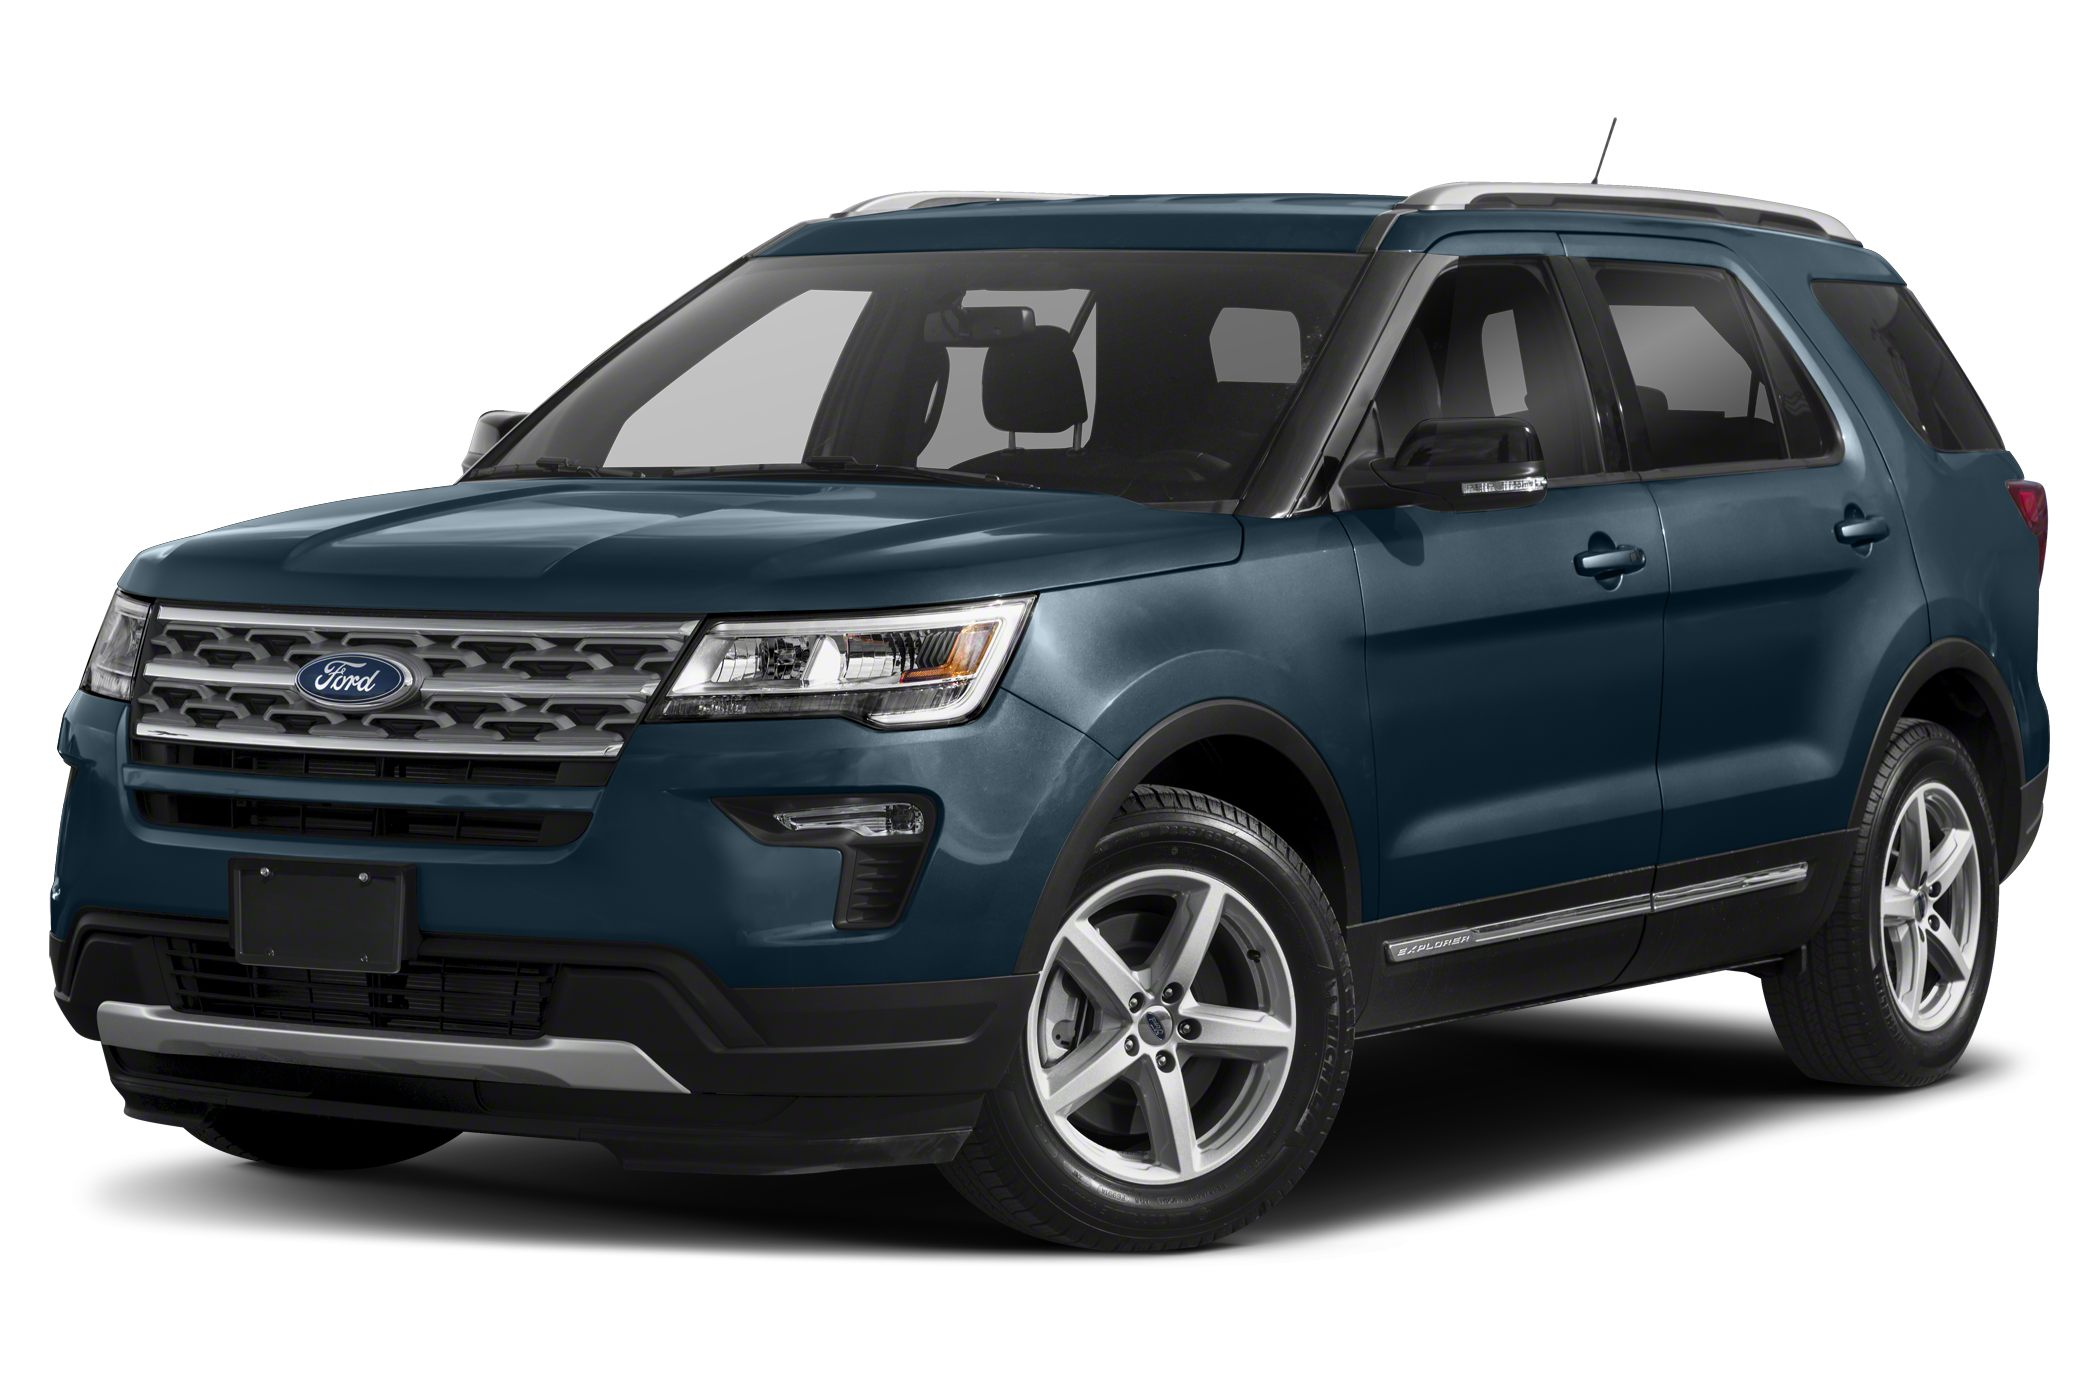 2019 Ford Explorer XLT 4dr Front-wheel Drive